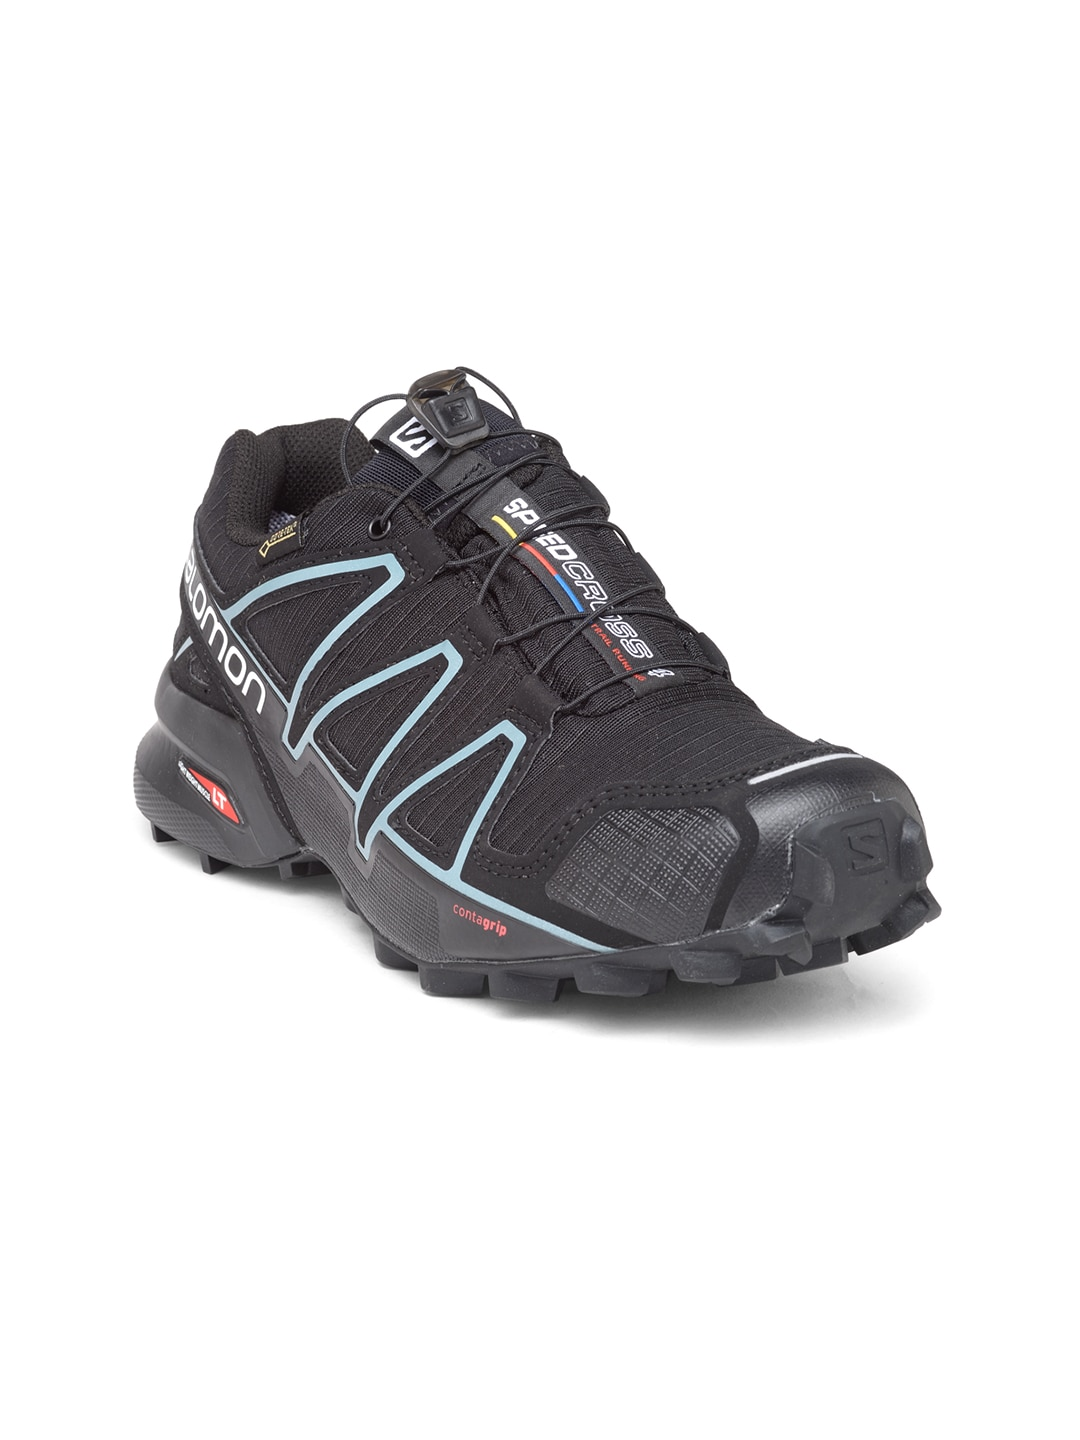 6bedc712a Women Sports Shoes Store - Buy Women Sports Shoes Store online in India